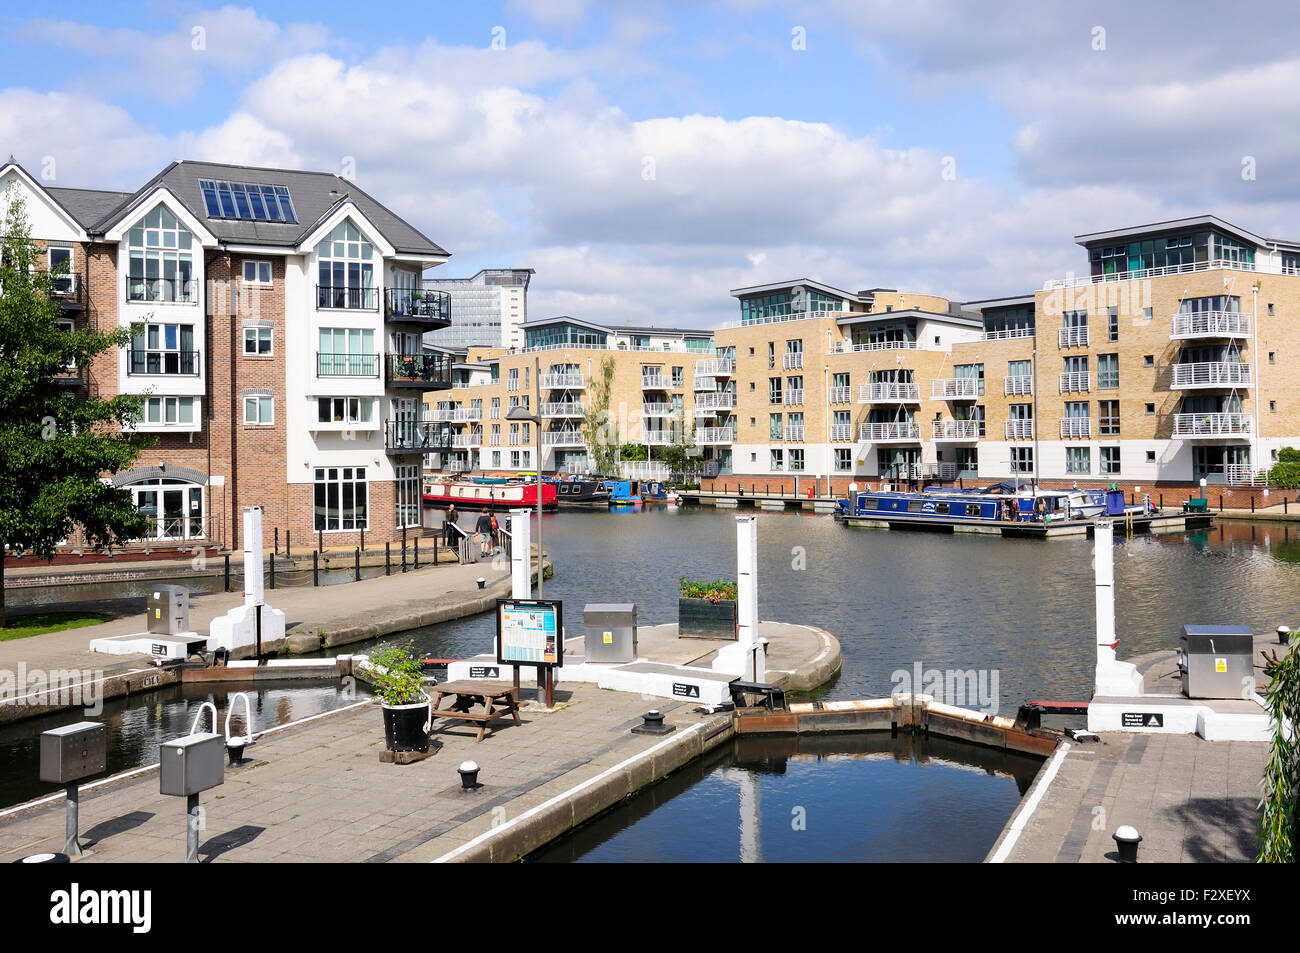 Modern apartments, Brentford Lock, Brentford, London Borough of Hounslow, Greater London, England, United Kingdom - Stock Image